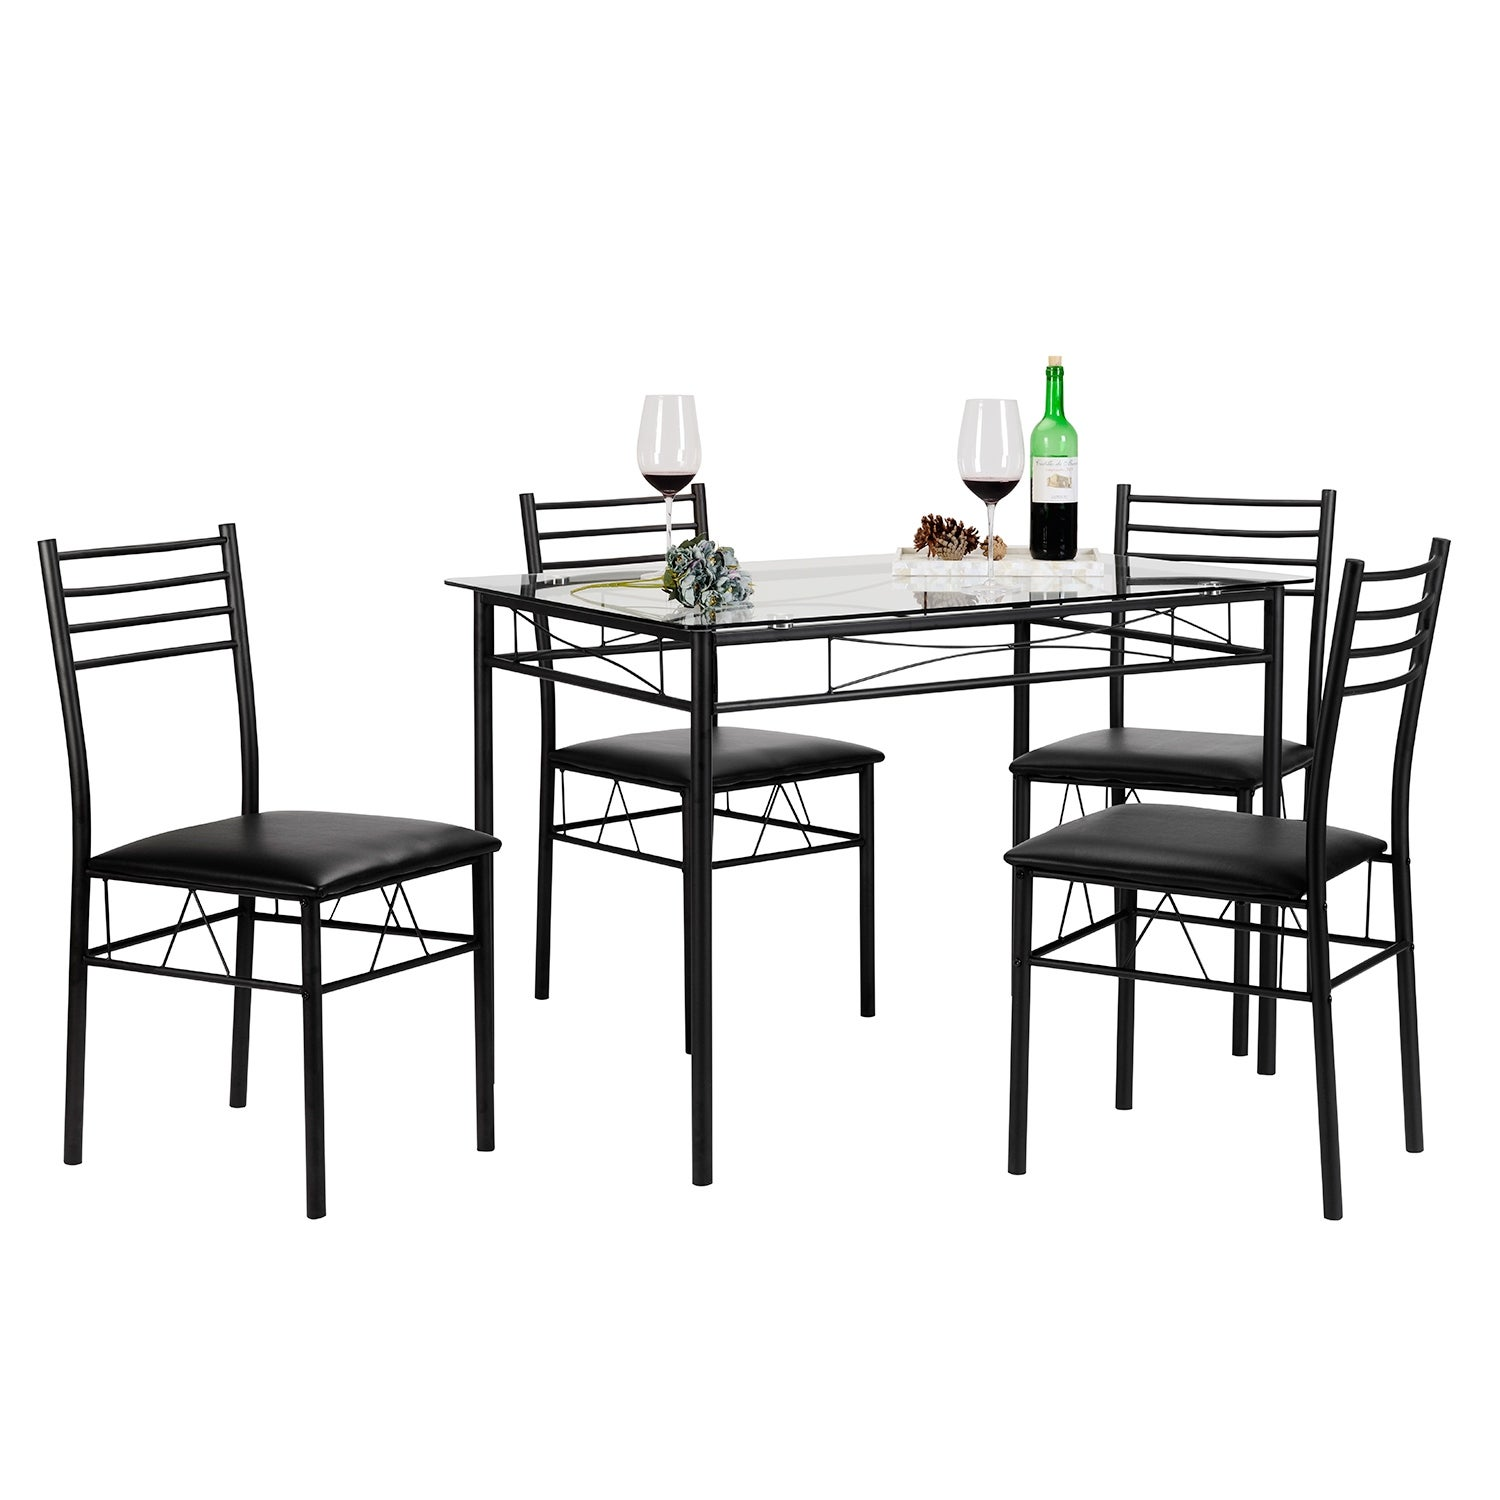 Shop Kitchen Dining Table SetGlass Table and 4 Chairs(Black/Silver) - Free Shipping Today - Overstock.com - 18541669  sc 1 st  Overstock.com & Shop Kitchen Dining Table SetGlass Table and 4 Chairs(Black/Silver ...